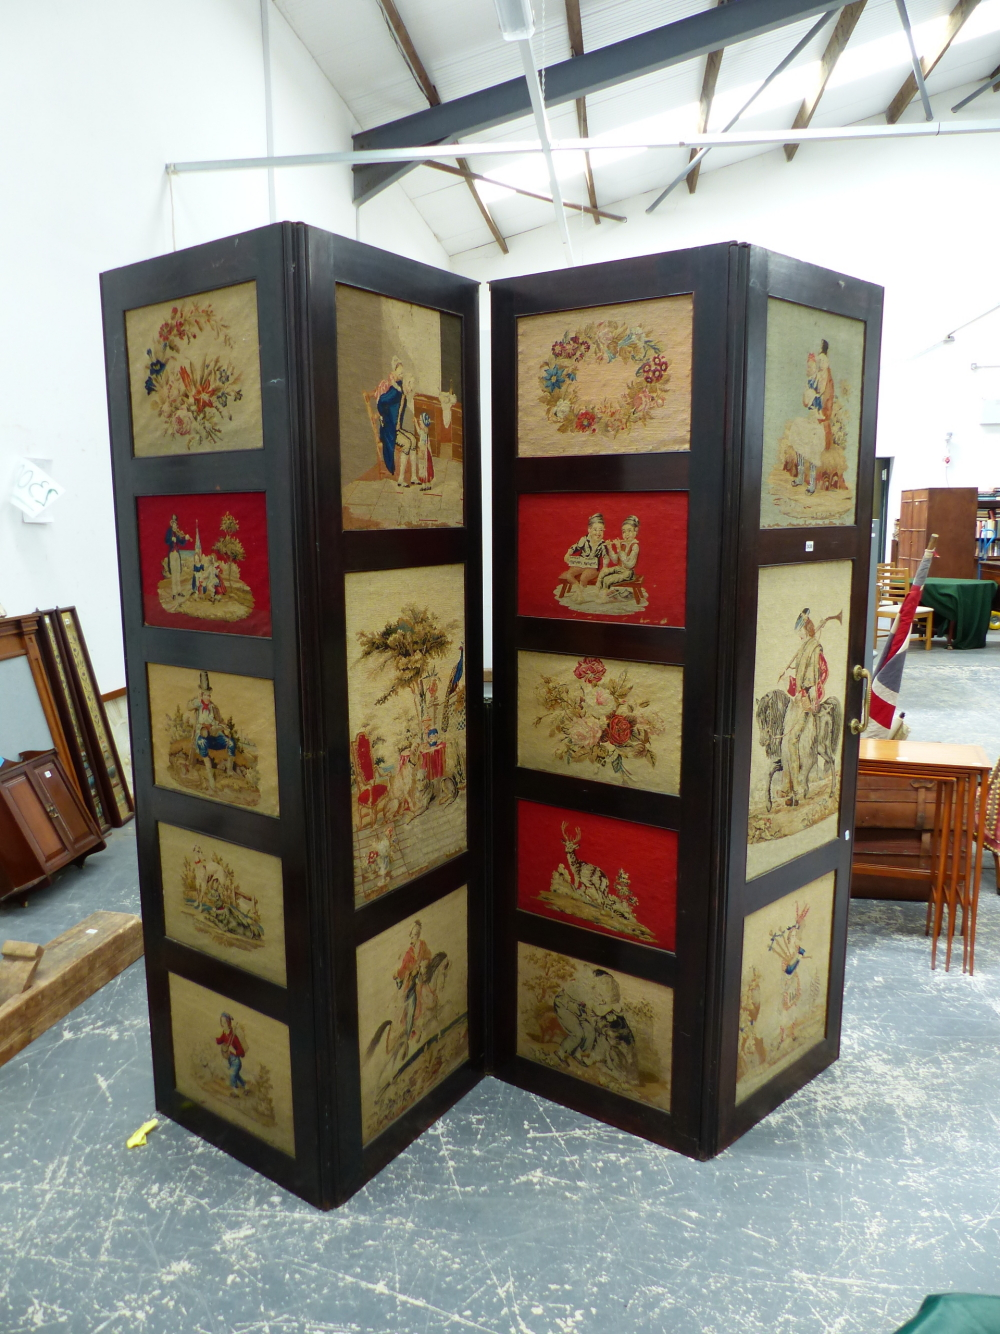 Lot 2430 - A LARGE VICTORIAN ROSEWOOD FRAMED FOUR FOLD SCREEN INSET WITH NEEDLEPOINT PANELS. EACH SECTION 62